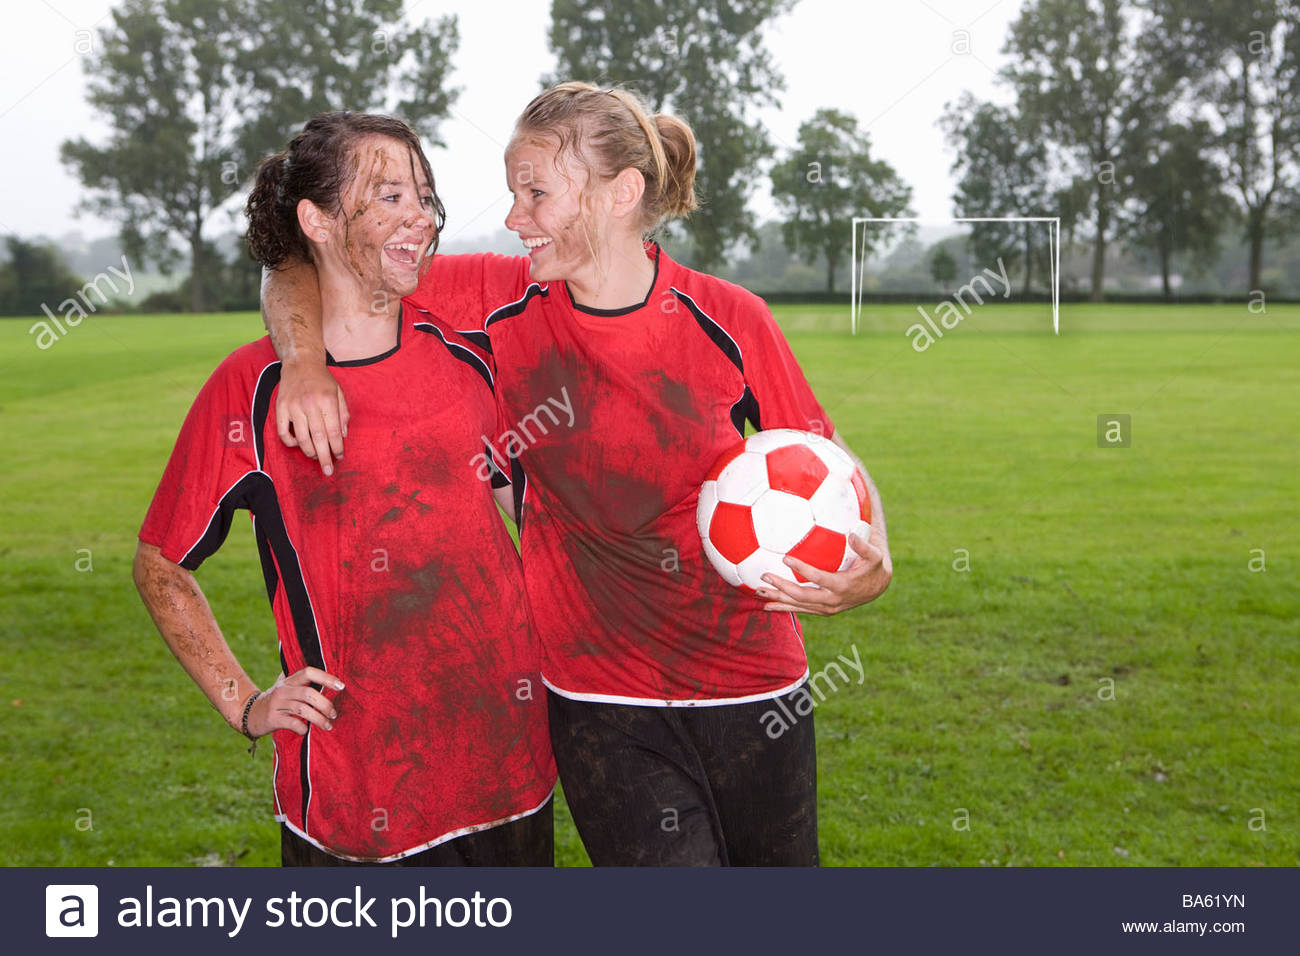 Soccer girls muddy